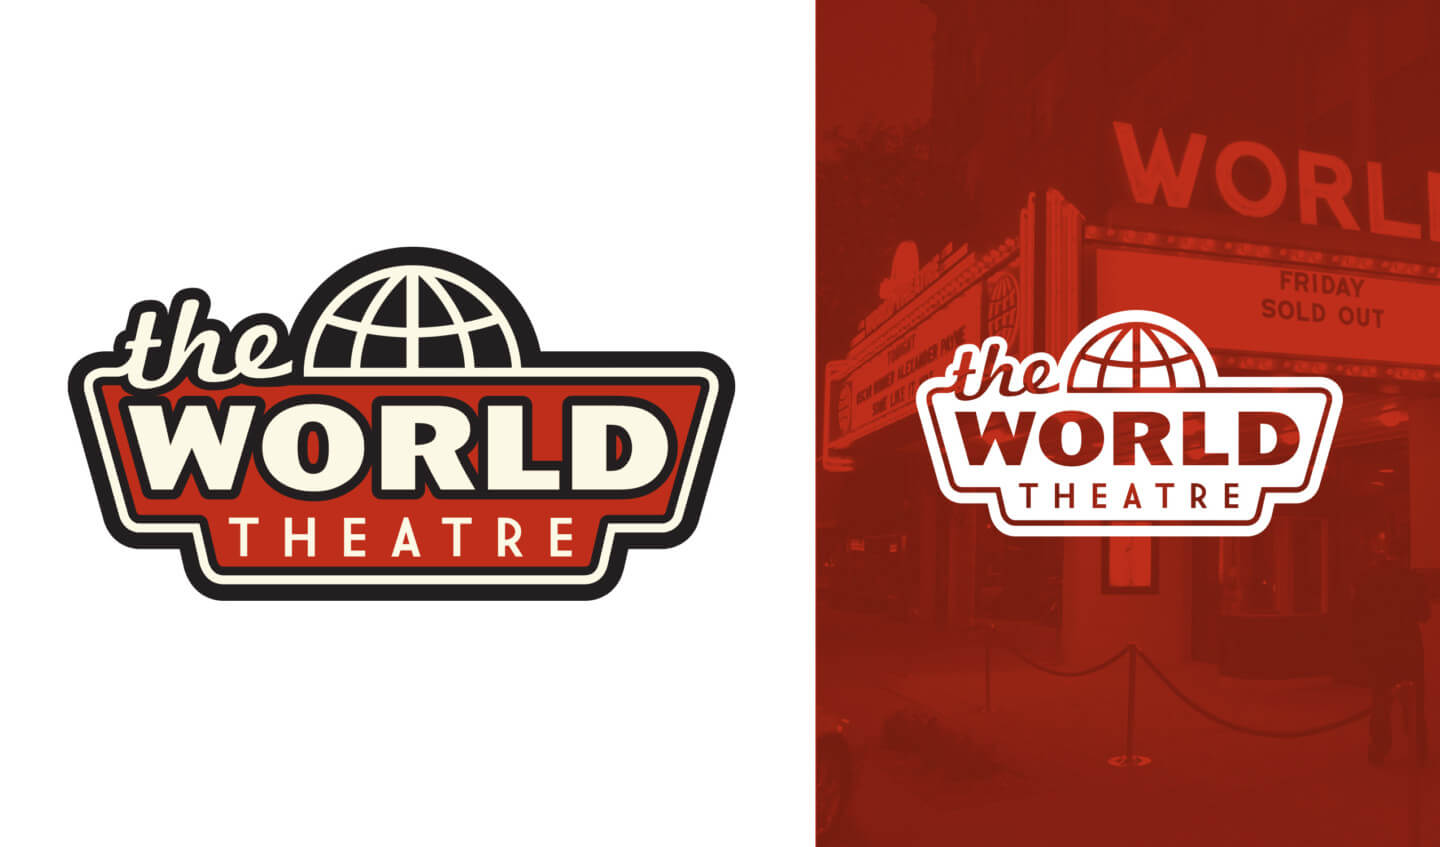 The World Theater logo